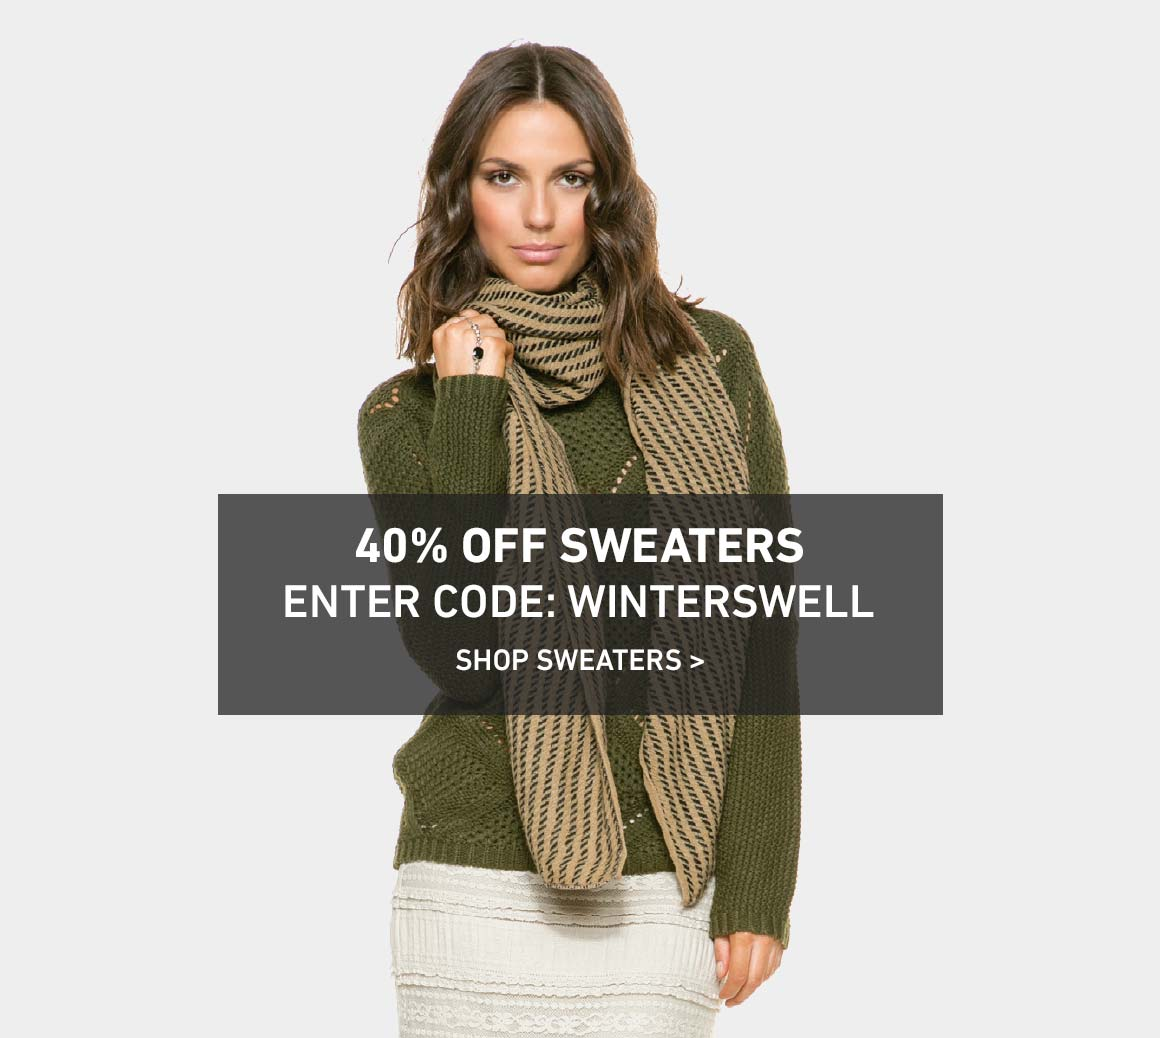 Ends Tonight: 40% Off Sweaters! Enter Code: WINTERSWELL